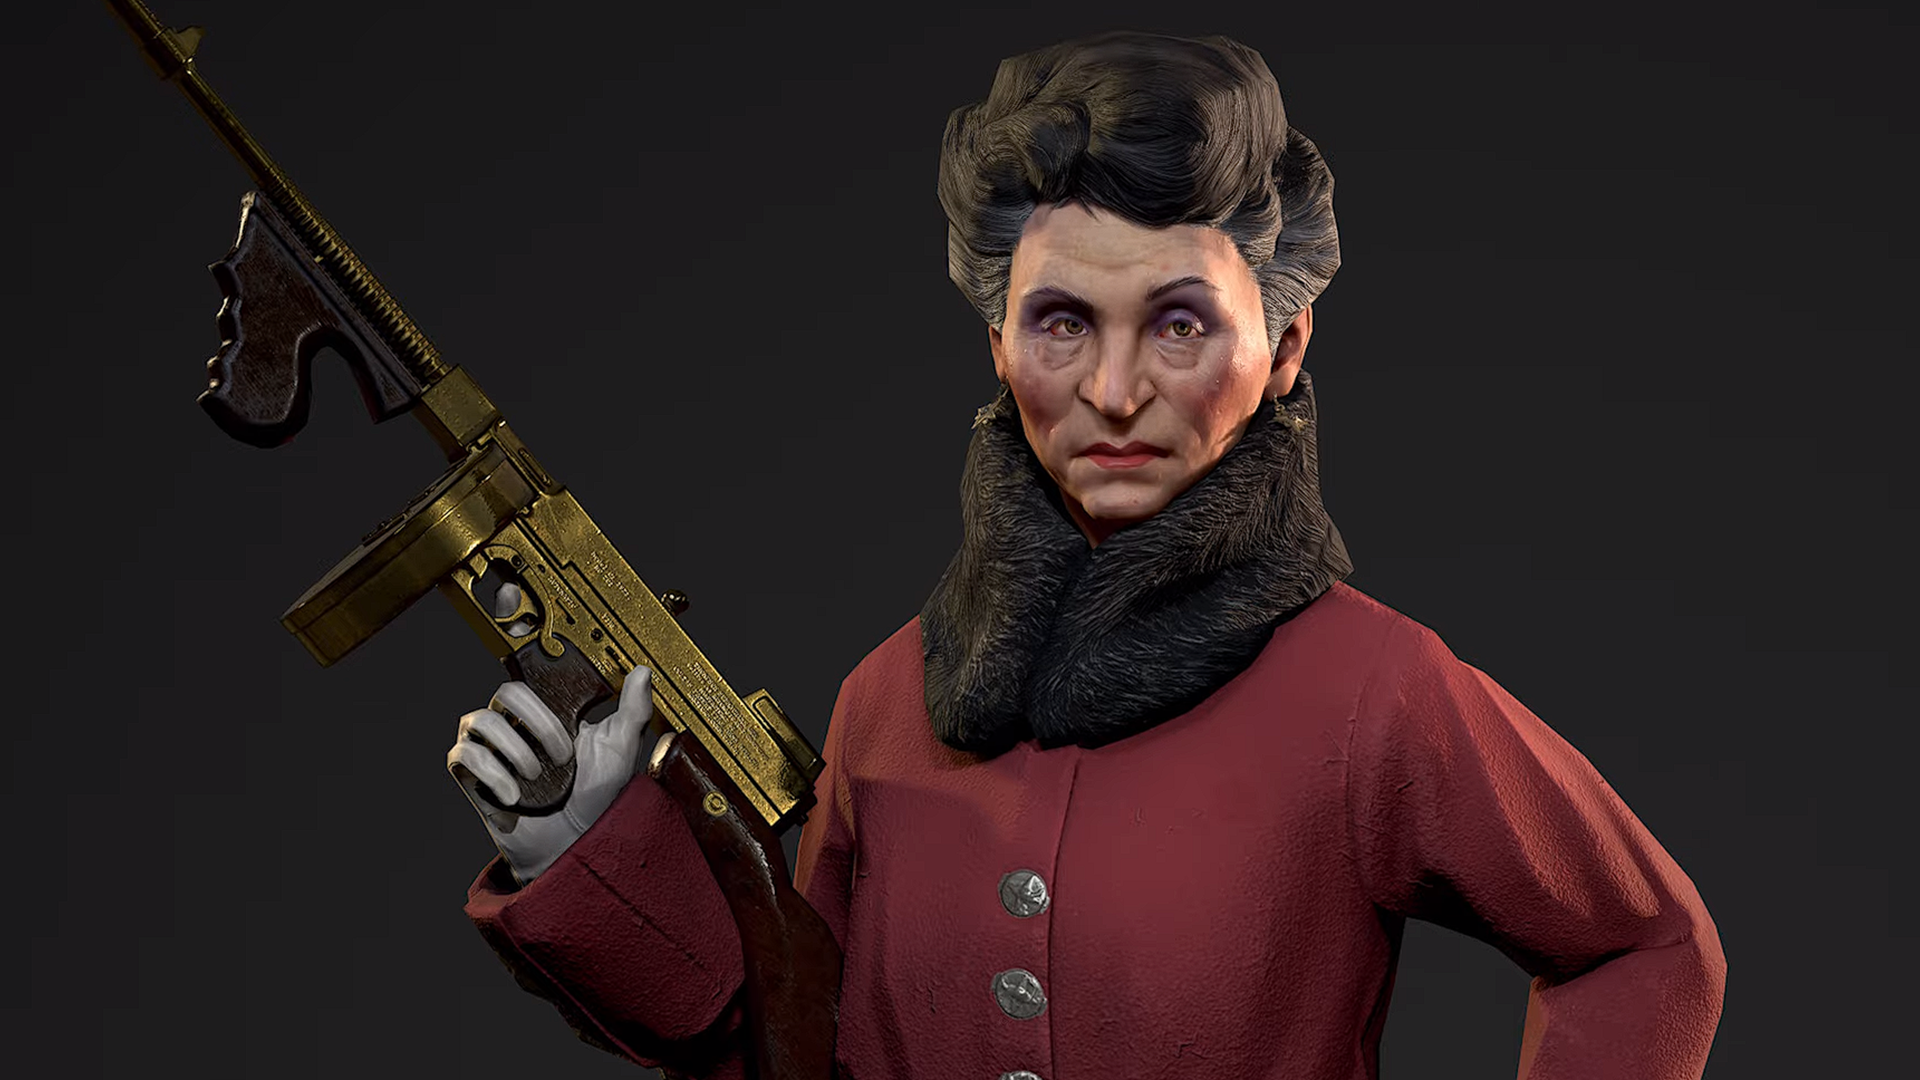 Empire Of Sin Features John Romero's Great-Grandmother, Who Was A Crime Boss In The 1920s